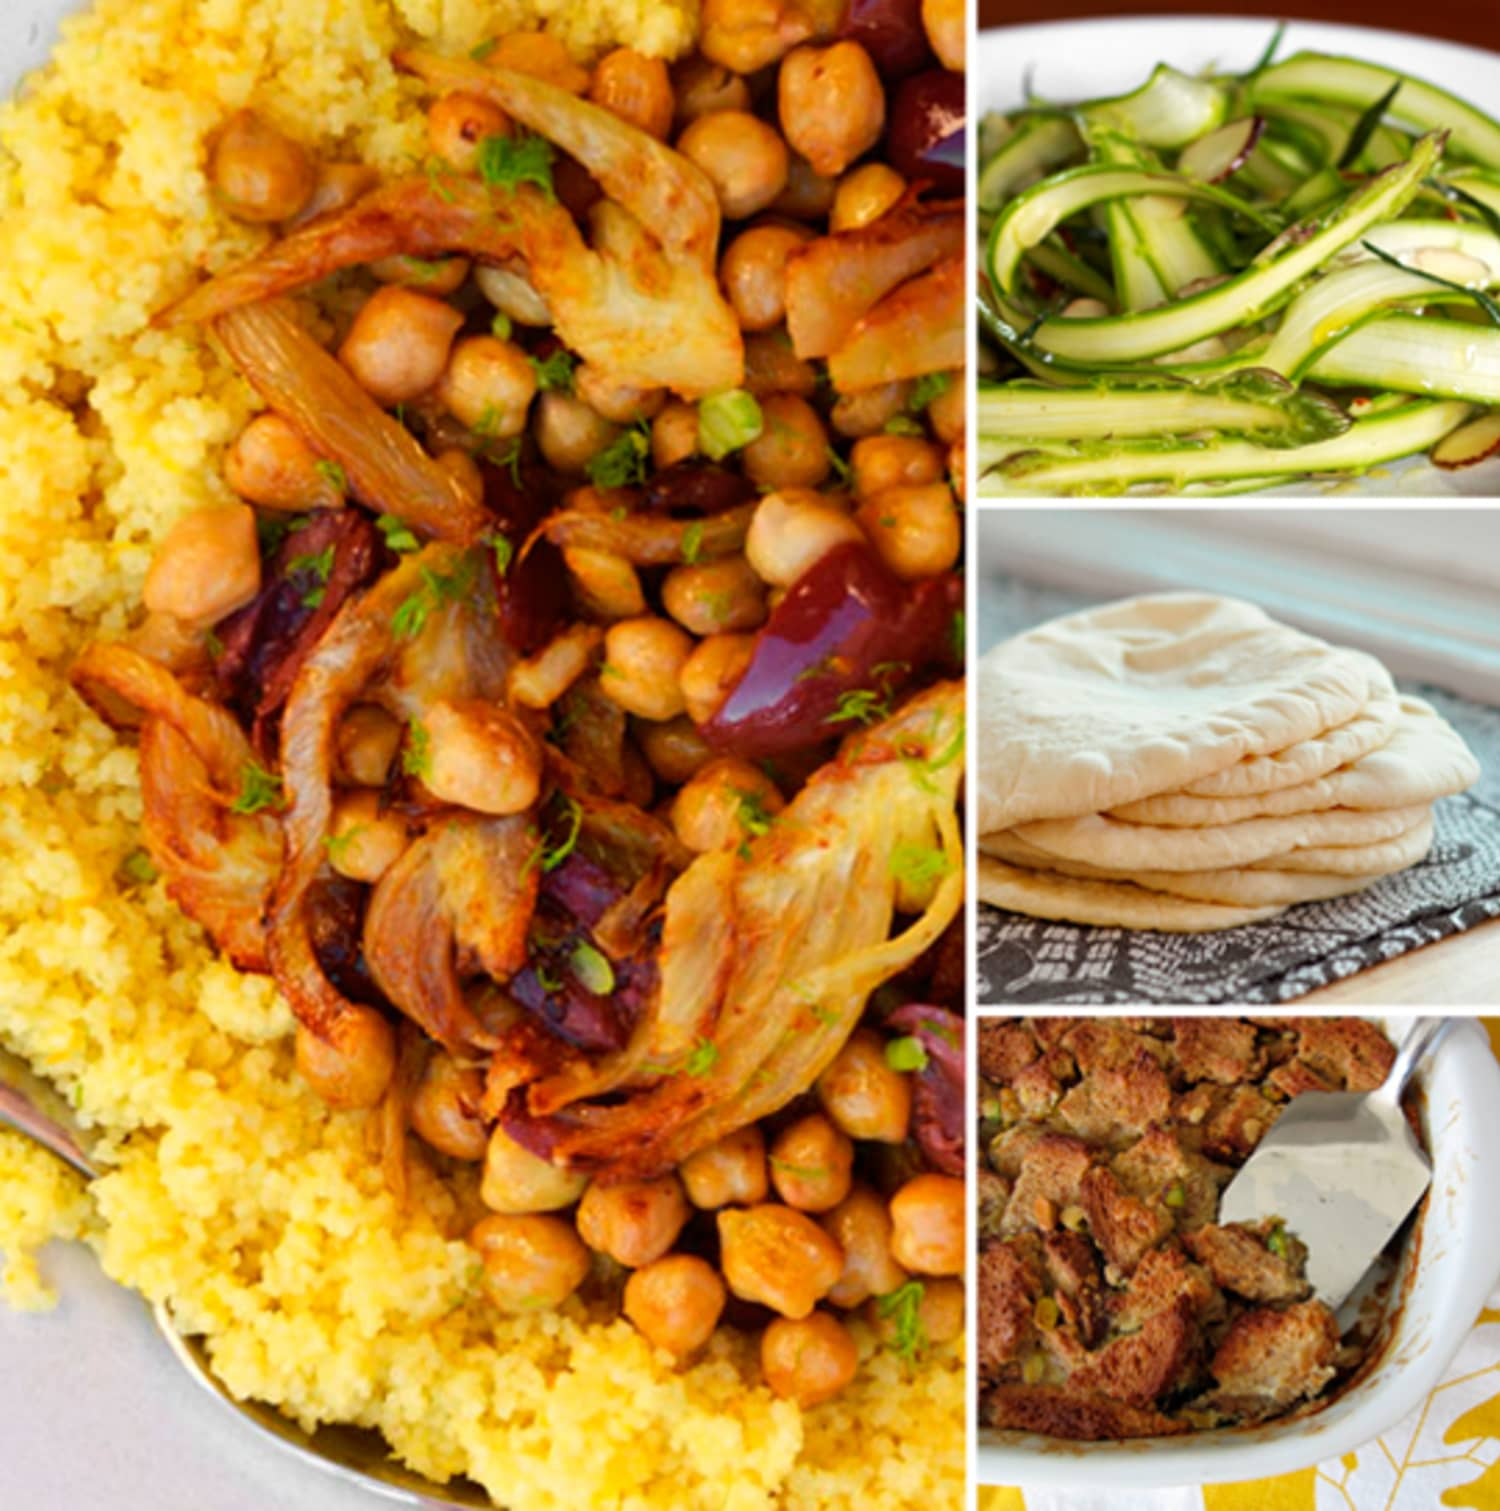 Colorful & Casual: Menu For A Laid-Back Vegetarian Dinner